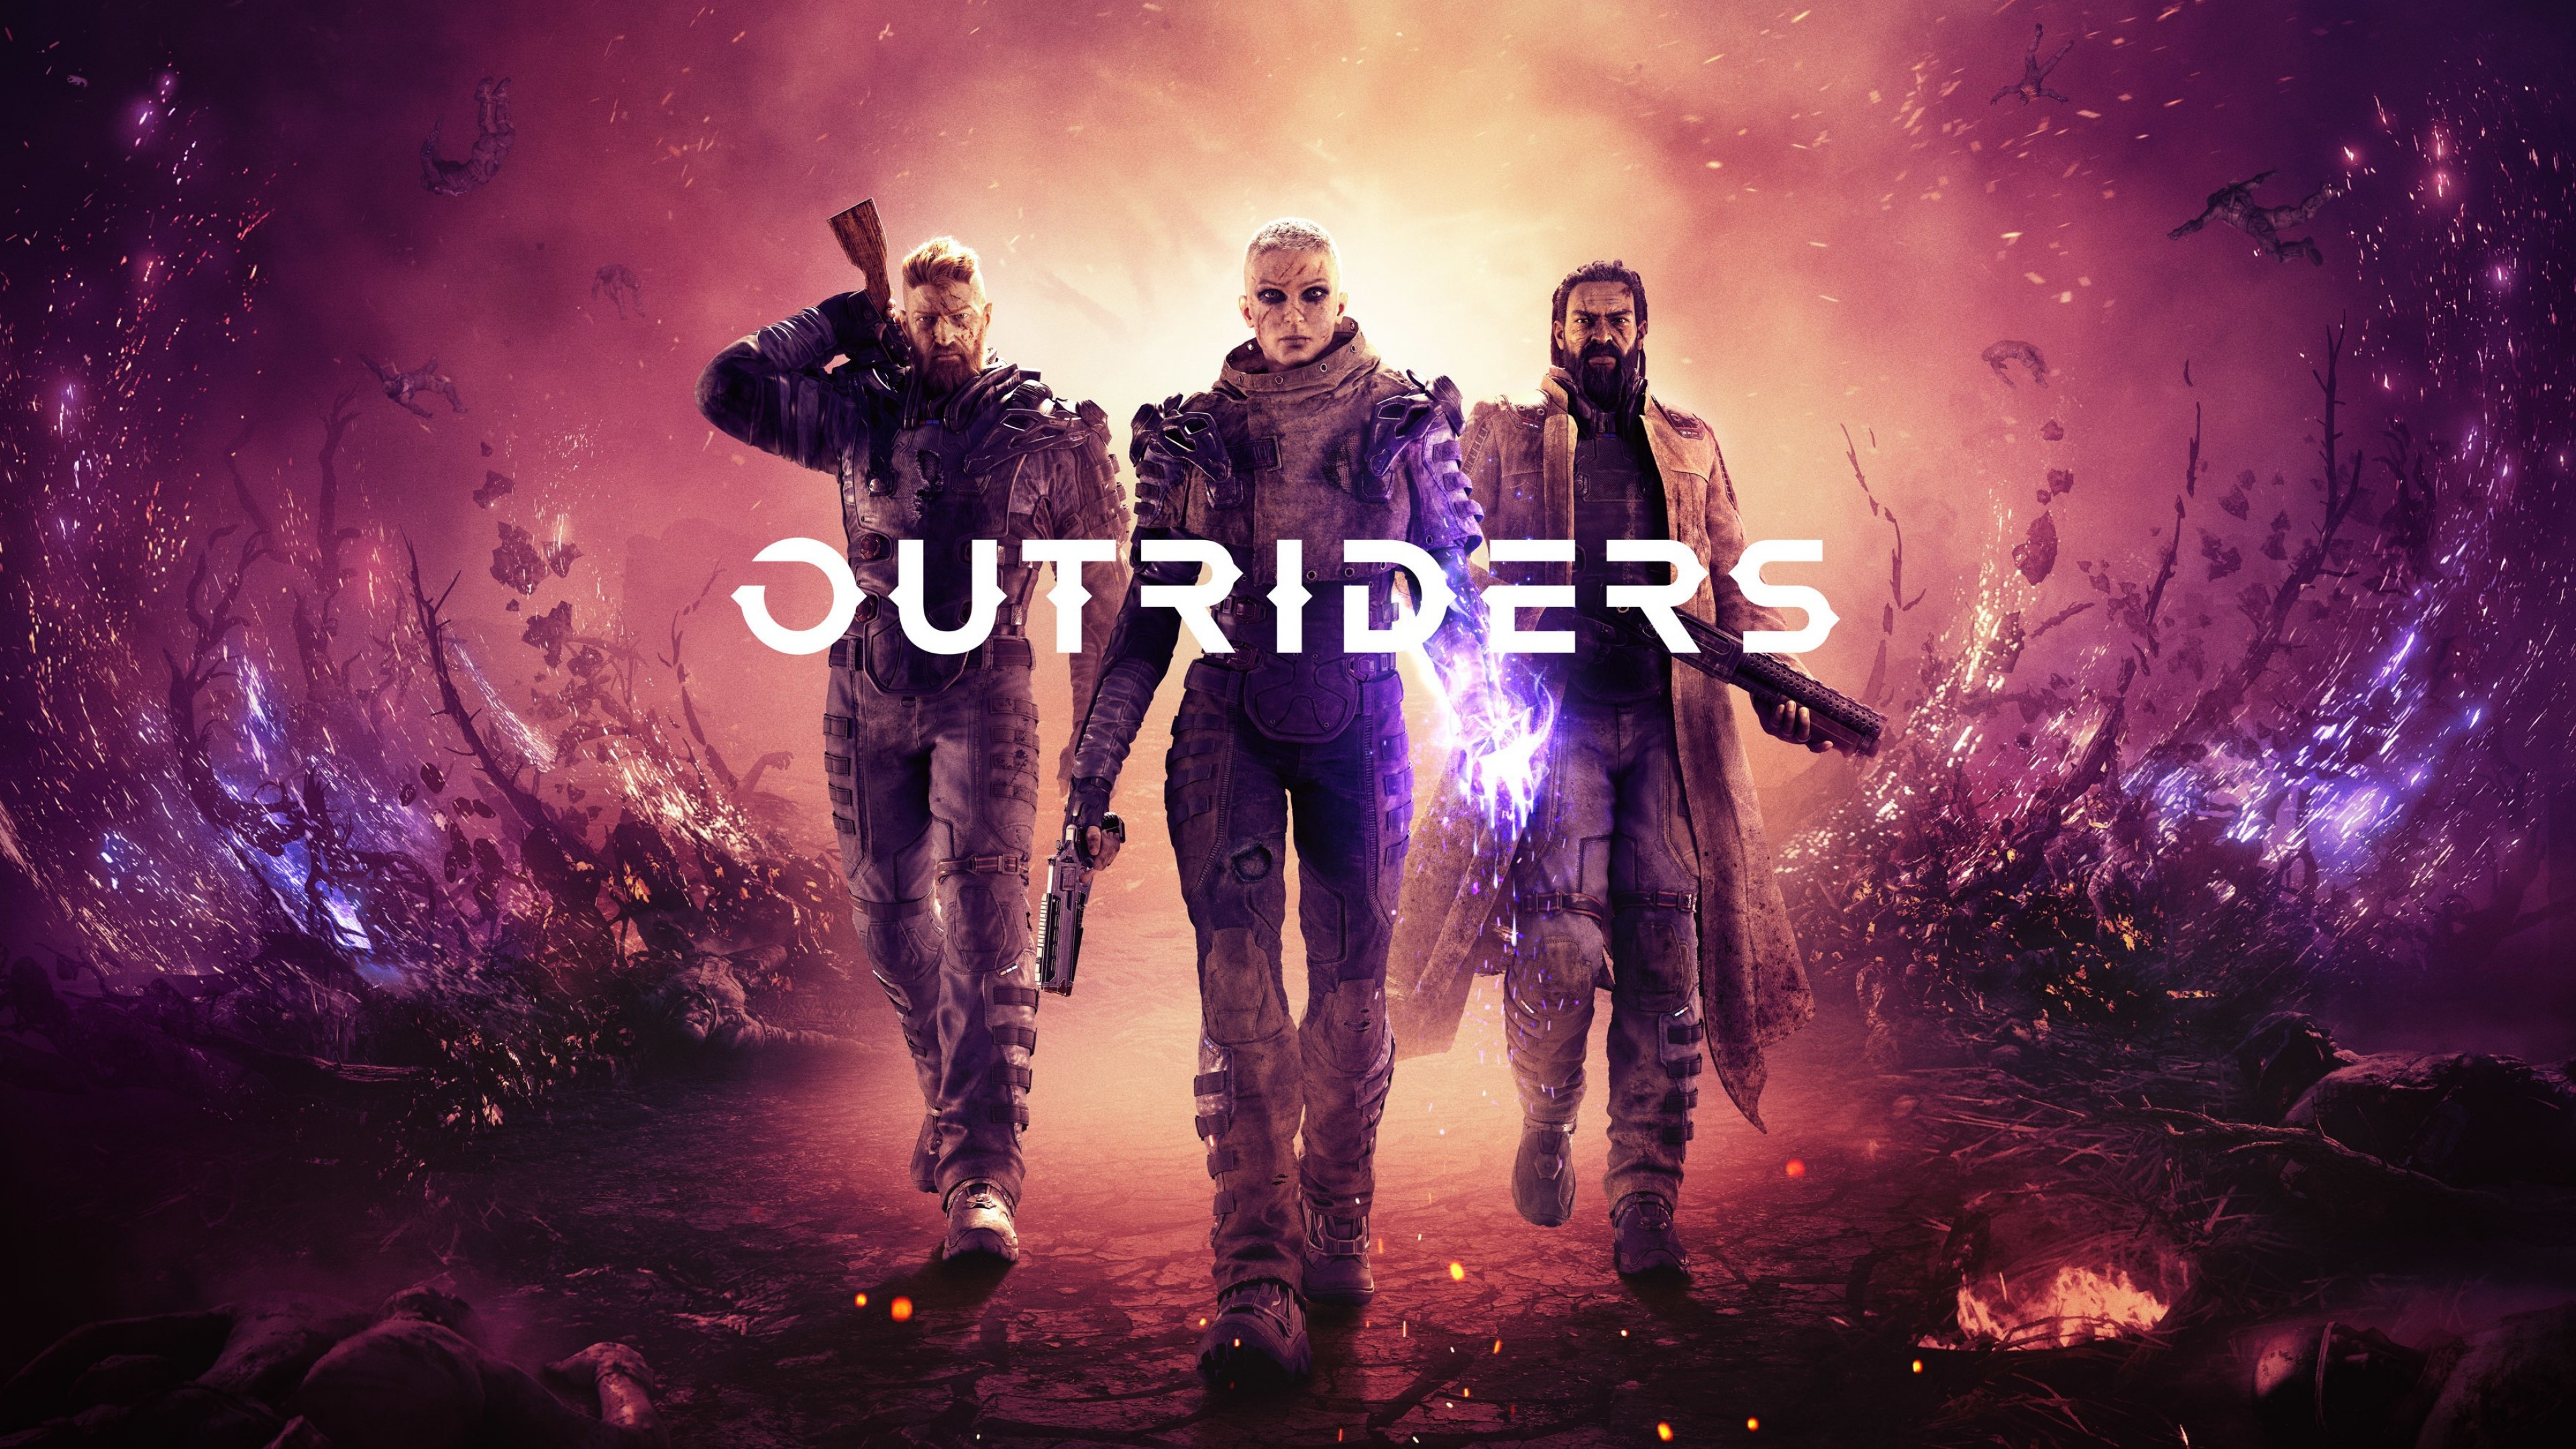 outriders video game hd wallpaper 69268